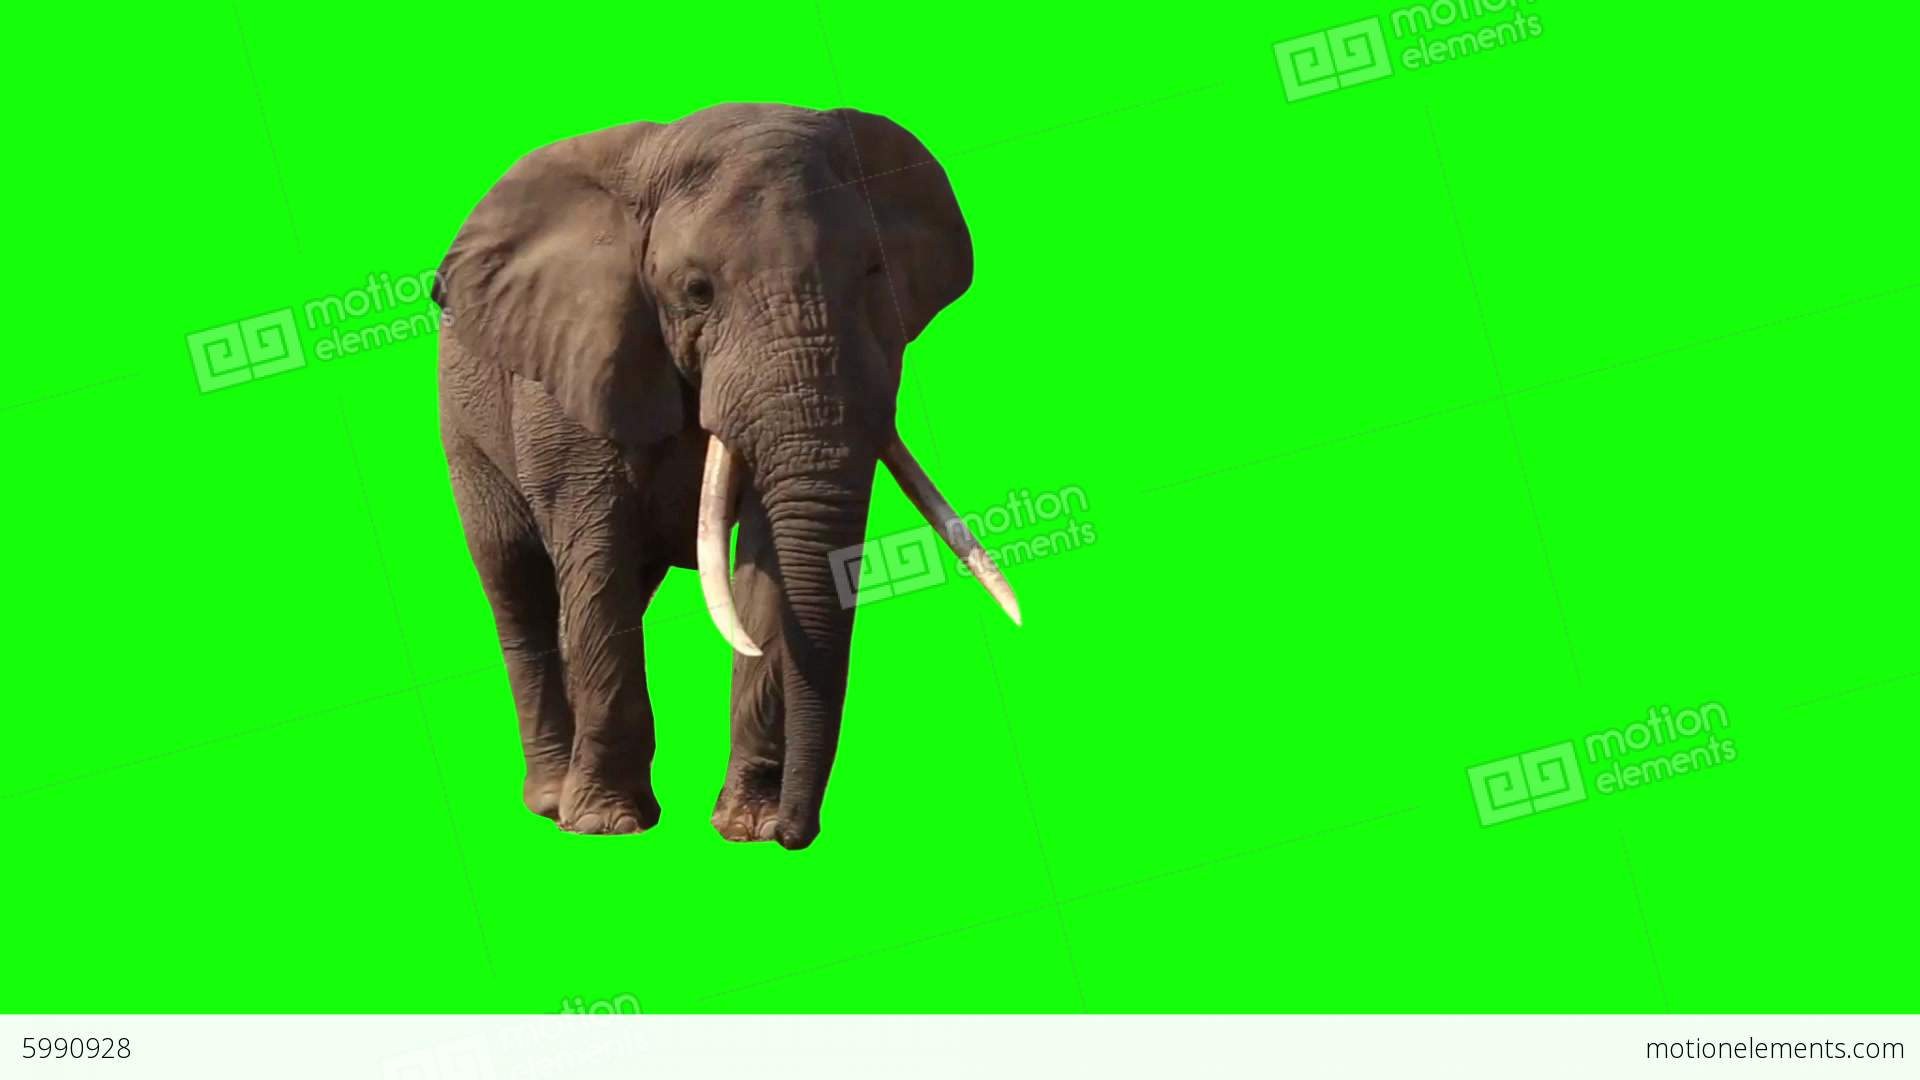 Must see Wallpaper Home Screen Elephant - me5990928-african-elephant-close-up-green-screen-kenya-hd-a0125  Collection_704179.jpg